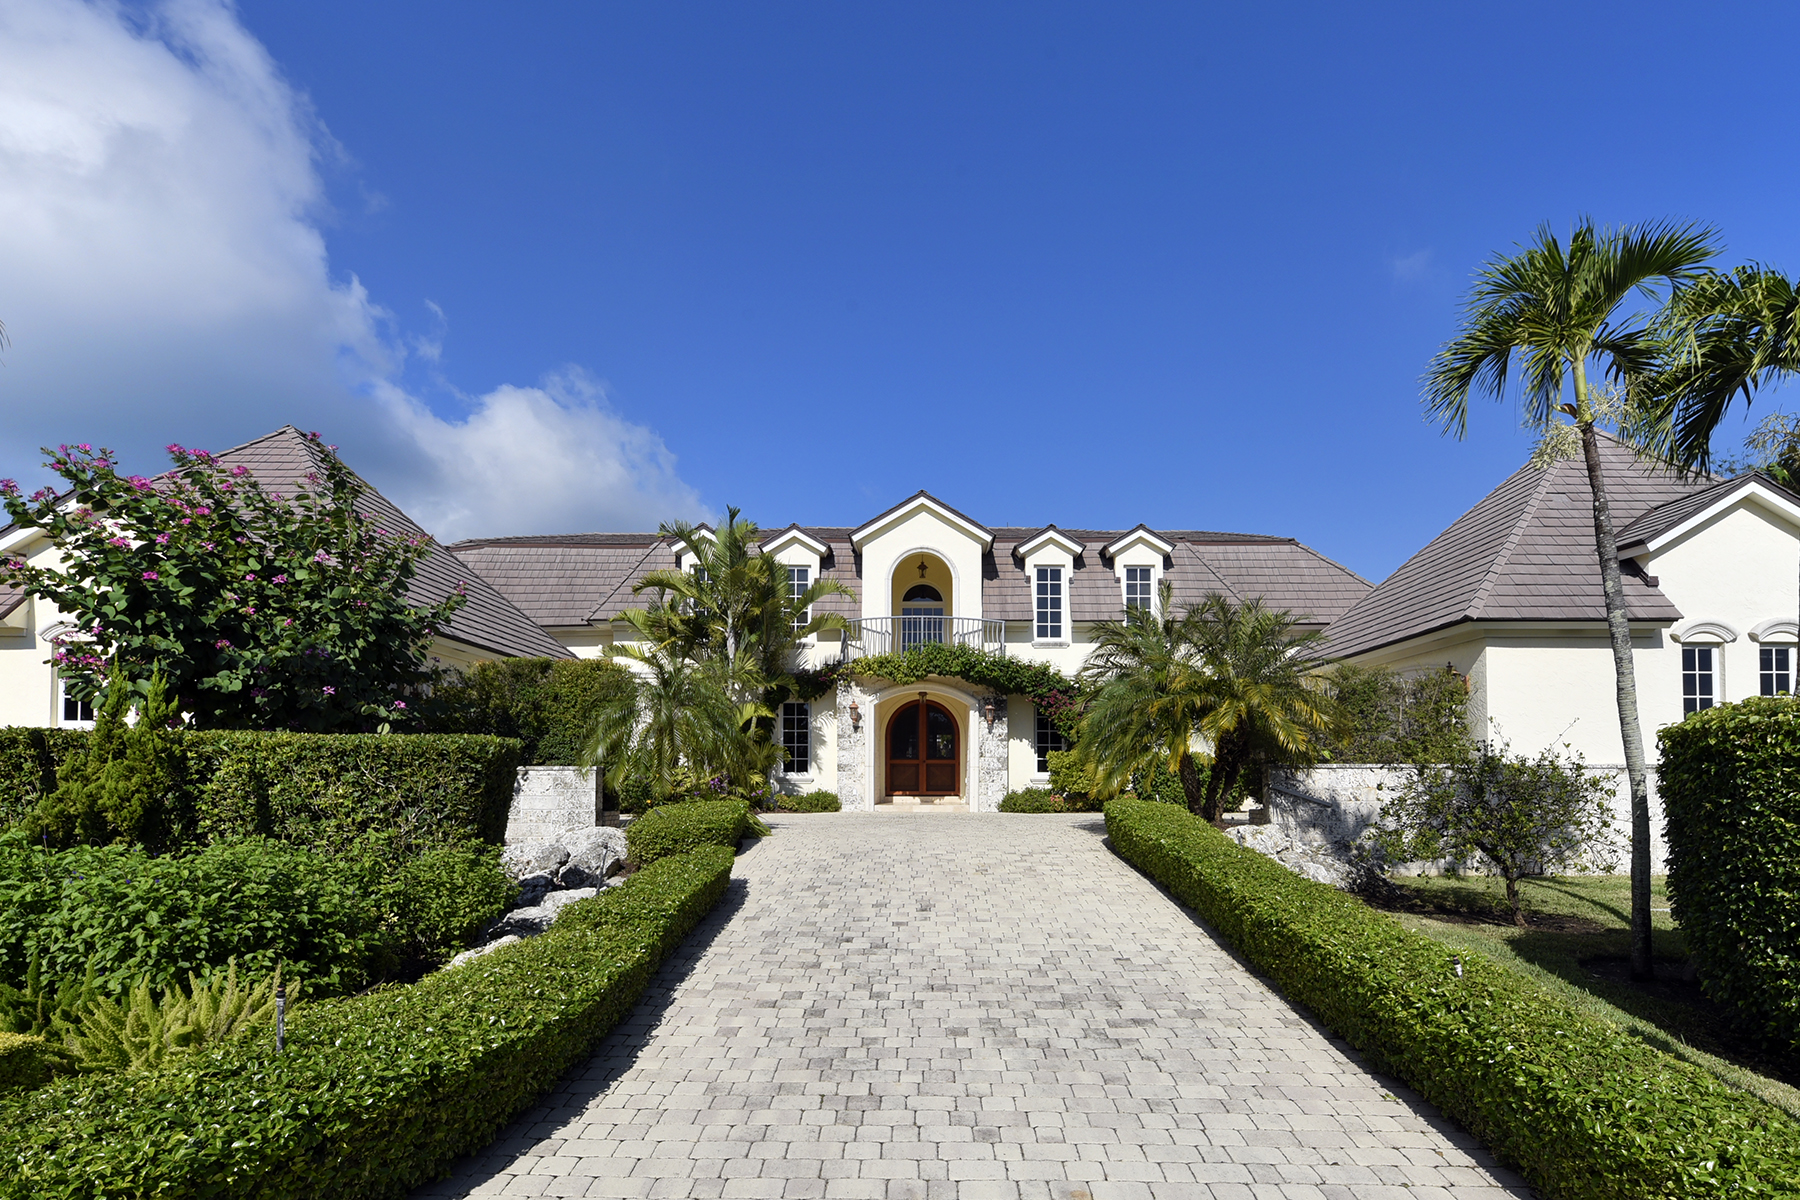 Single Family Home for Sale at Expansive Waterfront Home at Ocean Reef 25 Bay Ridge Road Key Largo, Florida 33037 United States